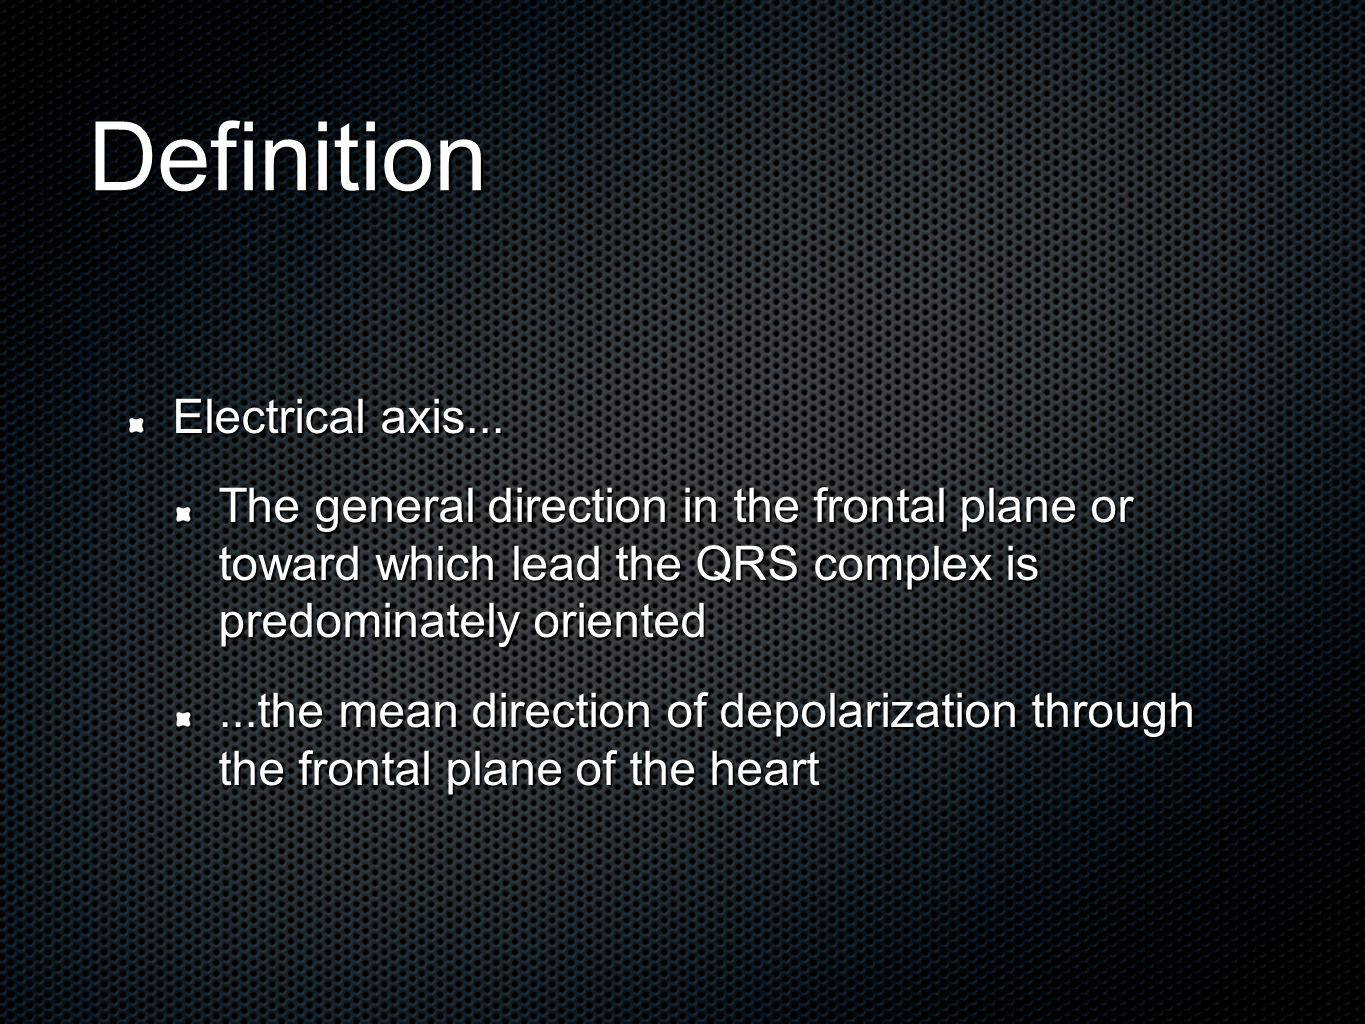 Definition Electrical axis...